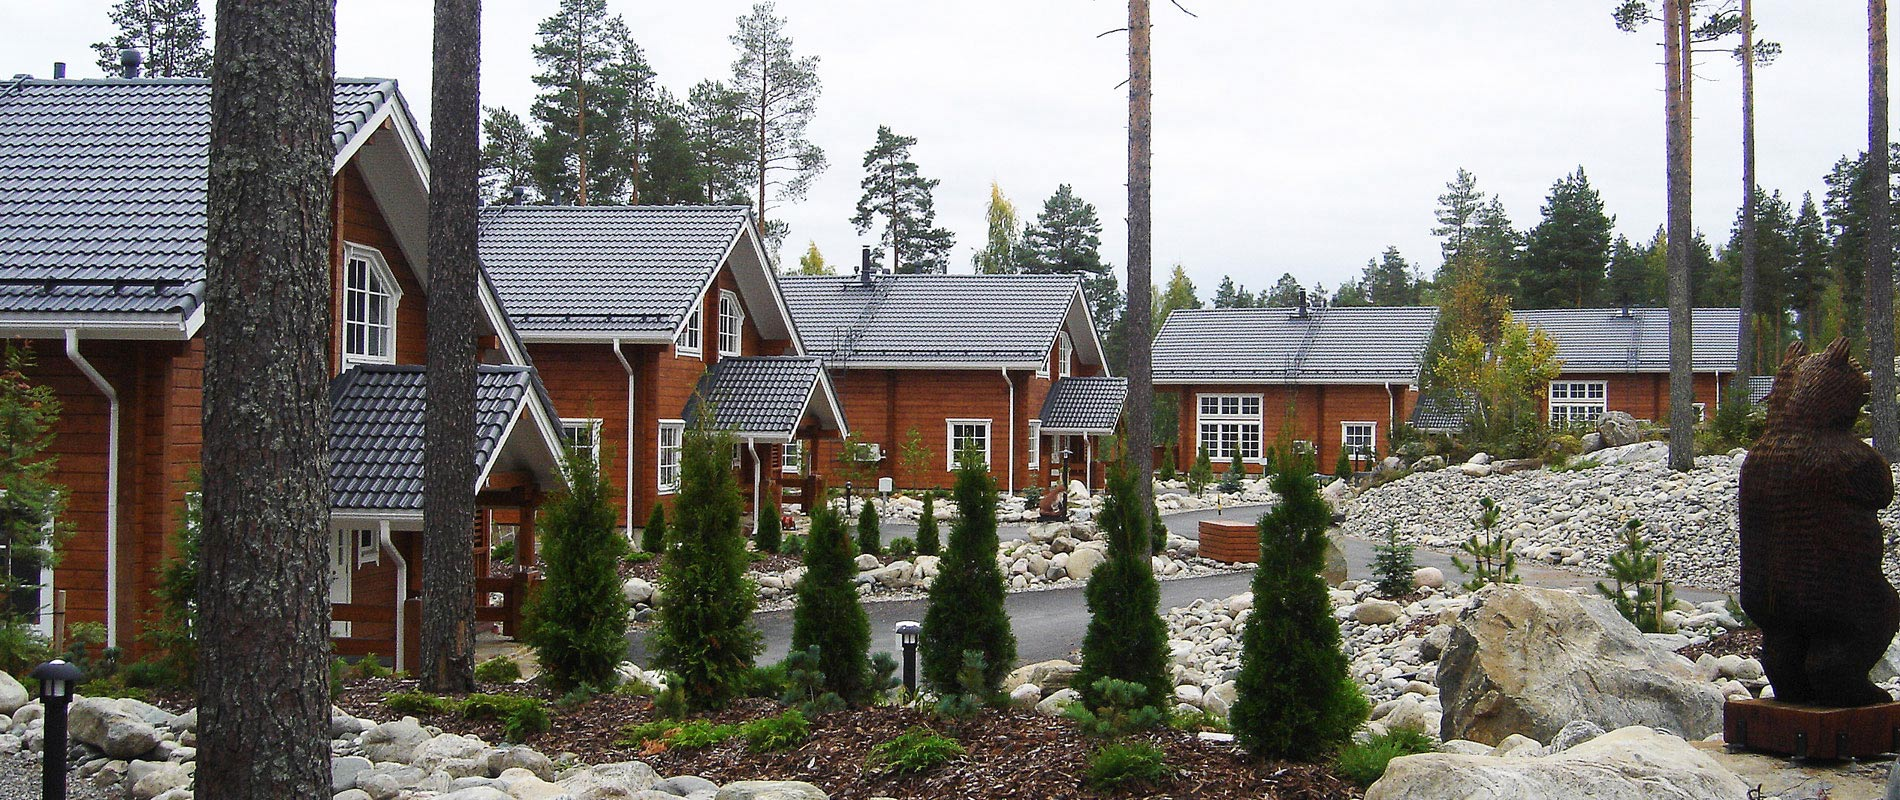 Log houses from Finland